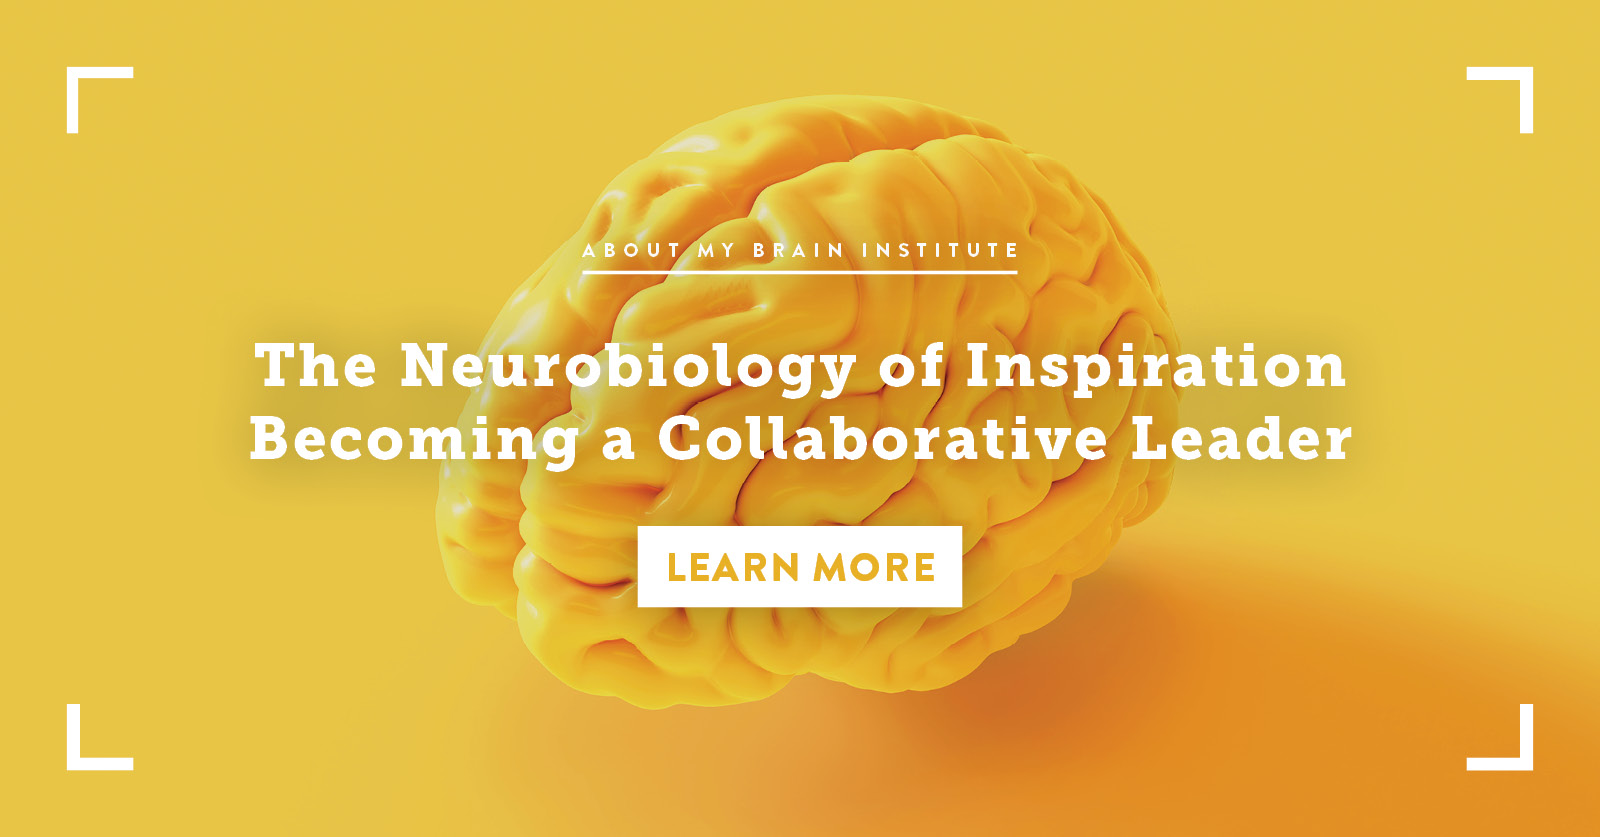 The Neurobiology of Inspiration - Becoming a Collaborative Leader